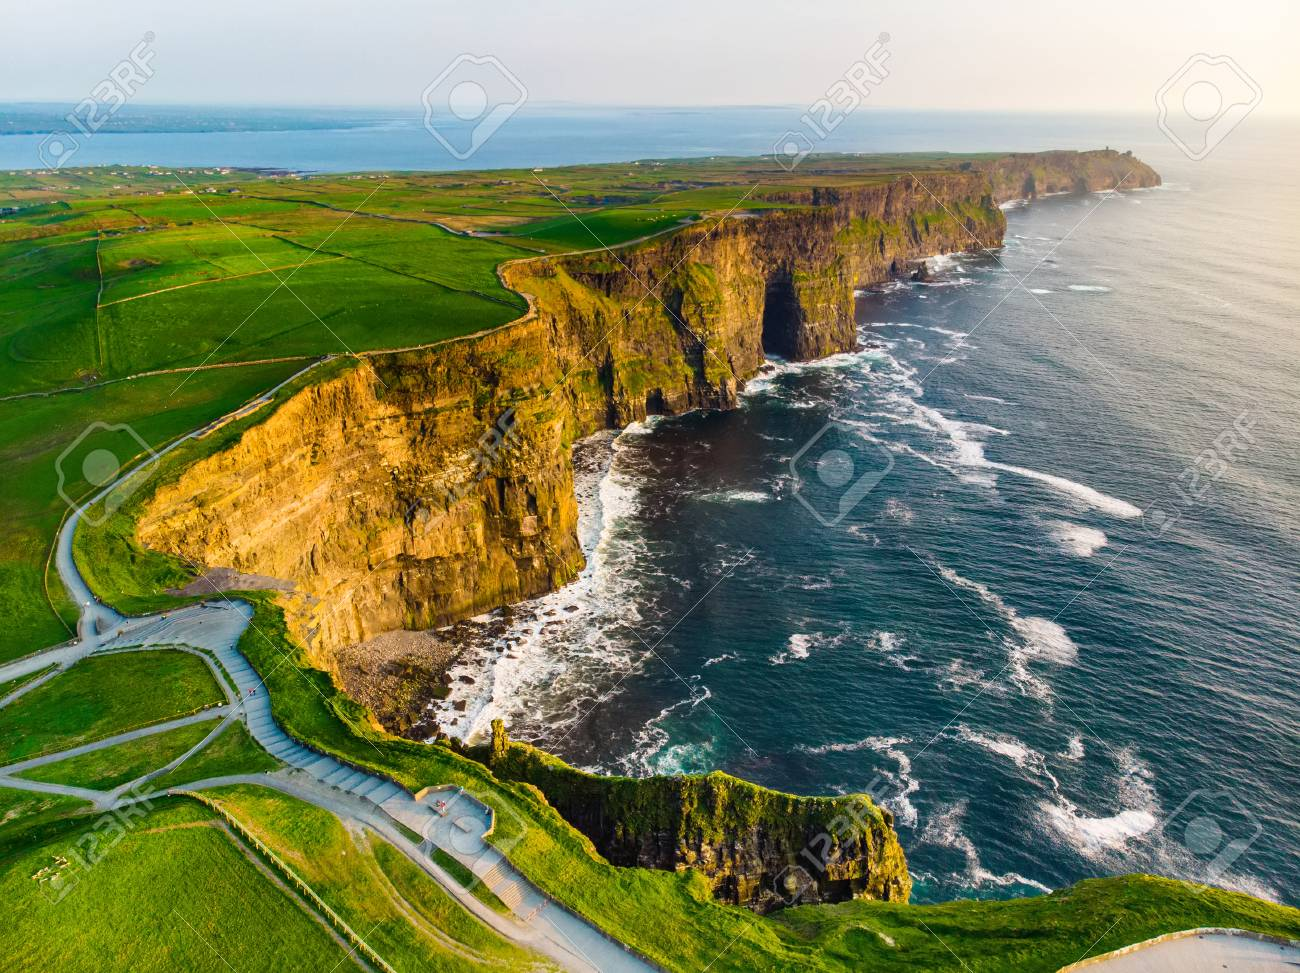 World famous Cliffs of Moher, one of the most popular tourist destinations in Ireland. Aerial view of widely known tourist attraction on Wild Atlantic Way in County Clare. - 103778707